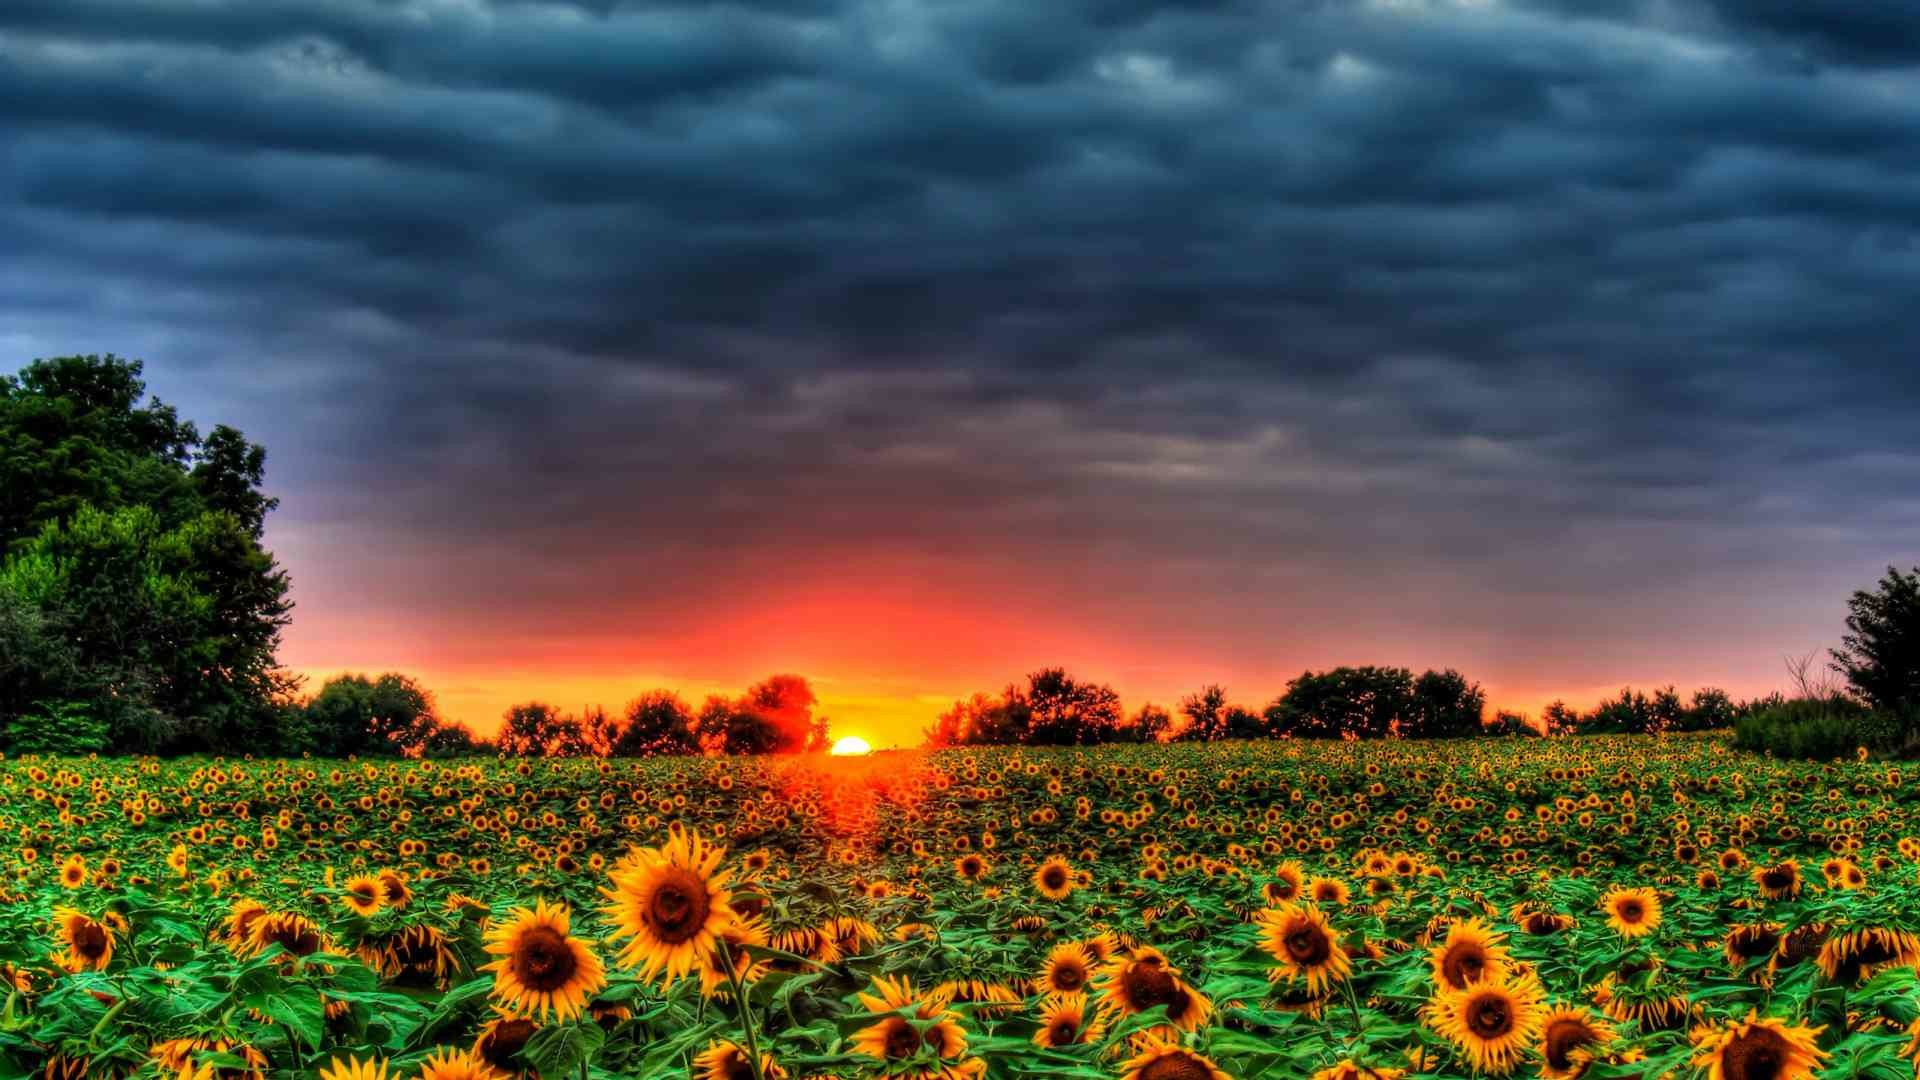 1920x1080 The sun setting on a field of sunflowers